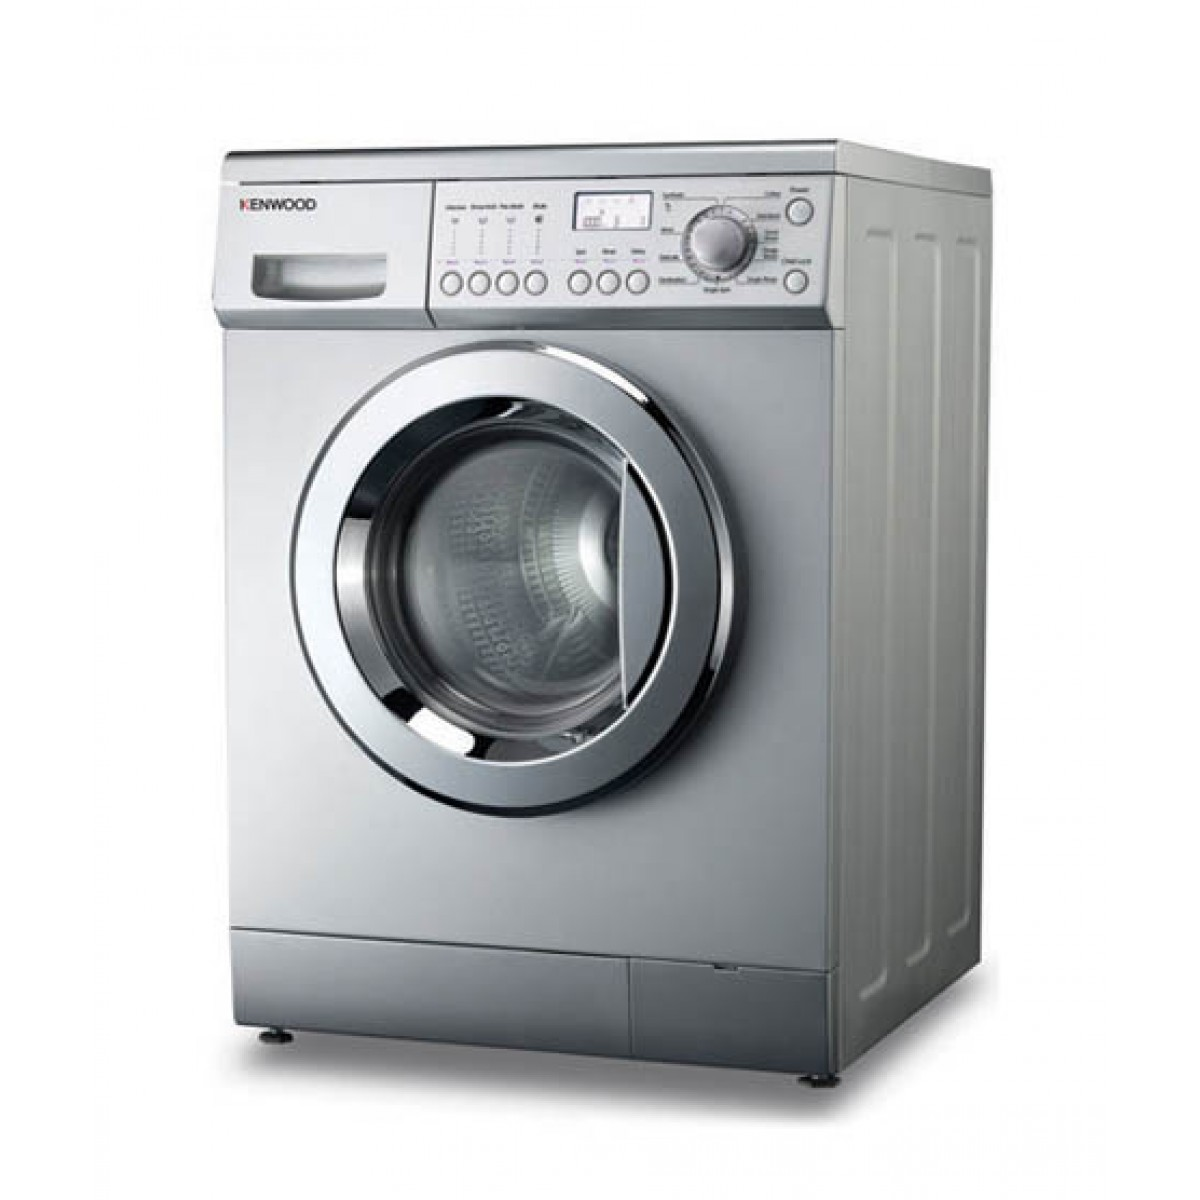 Kenwood Front Load Fully Automatic Washing Machine 7 KG (KWM-7020FAF)